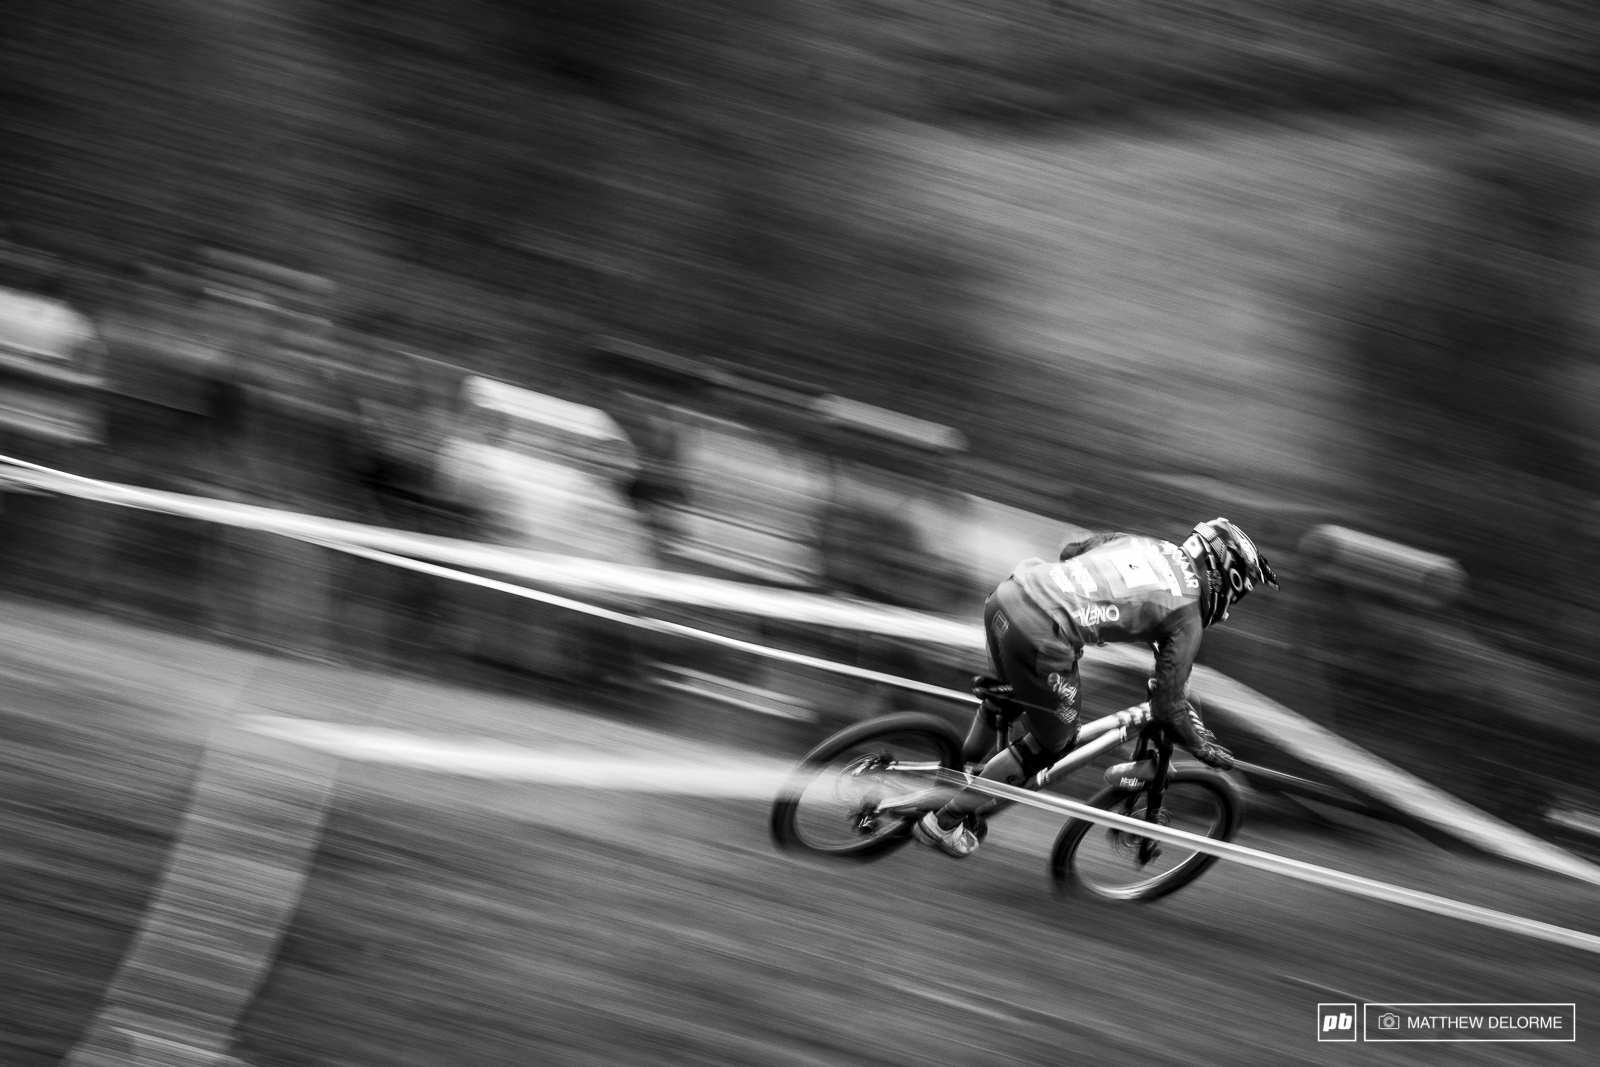 Greg Minnaar. Never ever count the smooth operator out. Still up for a podium run. Any day any conditions.